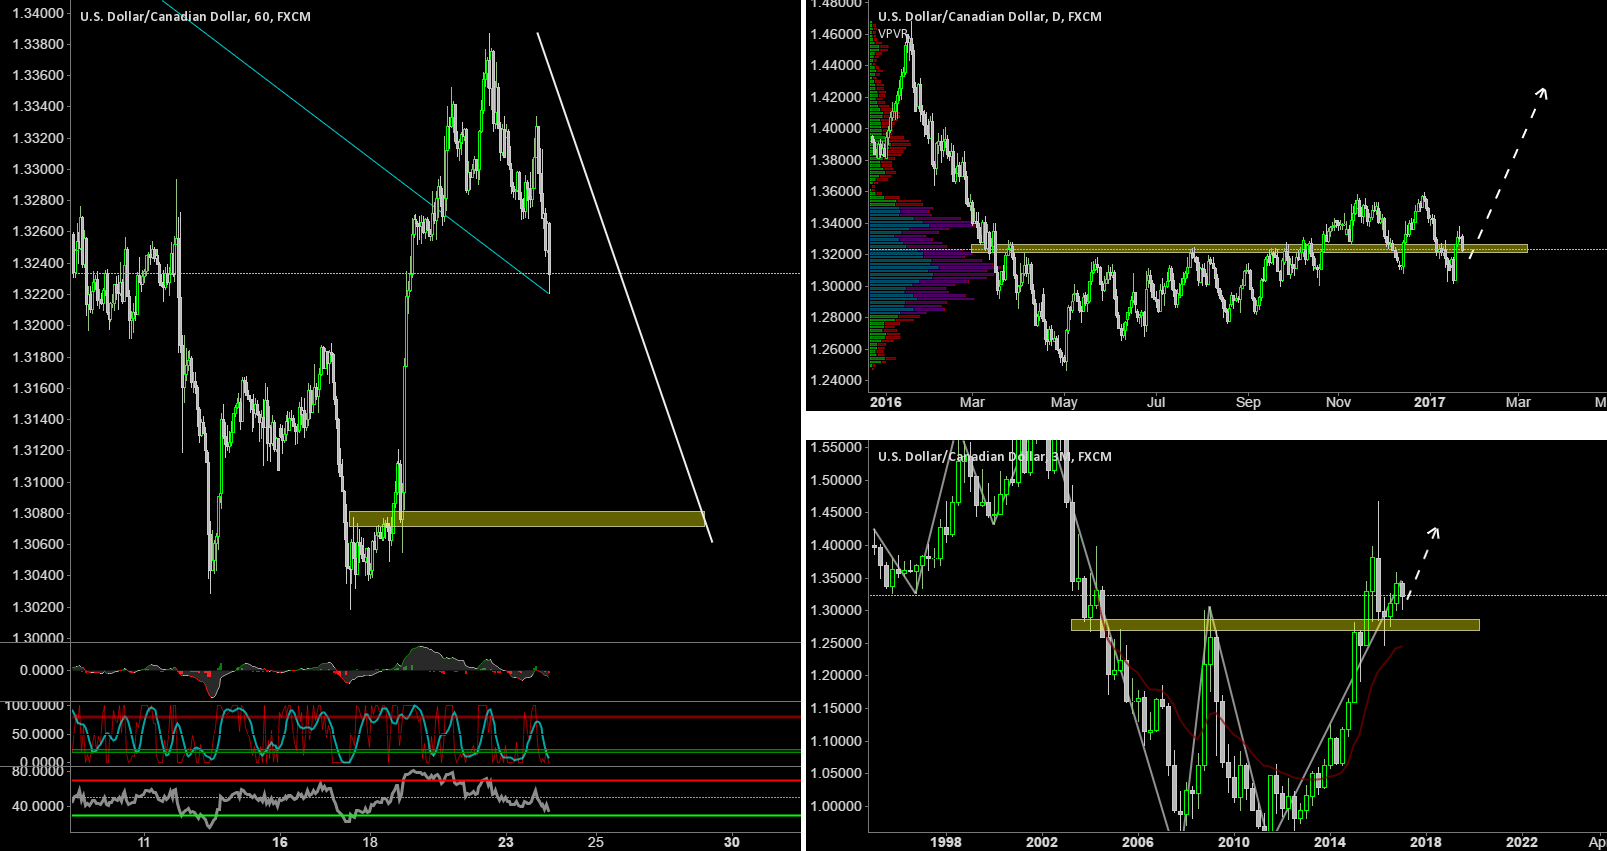 USDCAD with a good potential to go nord